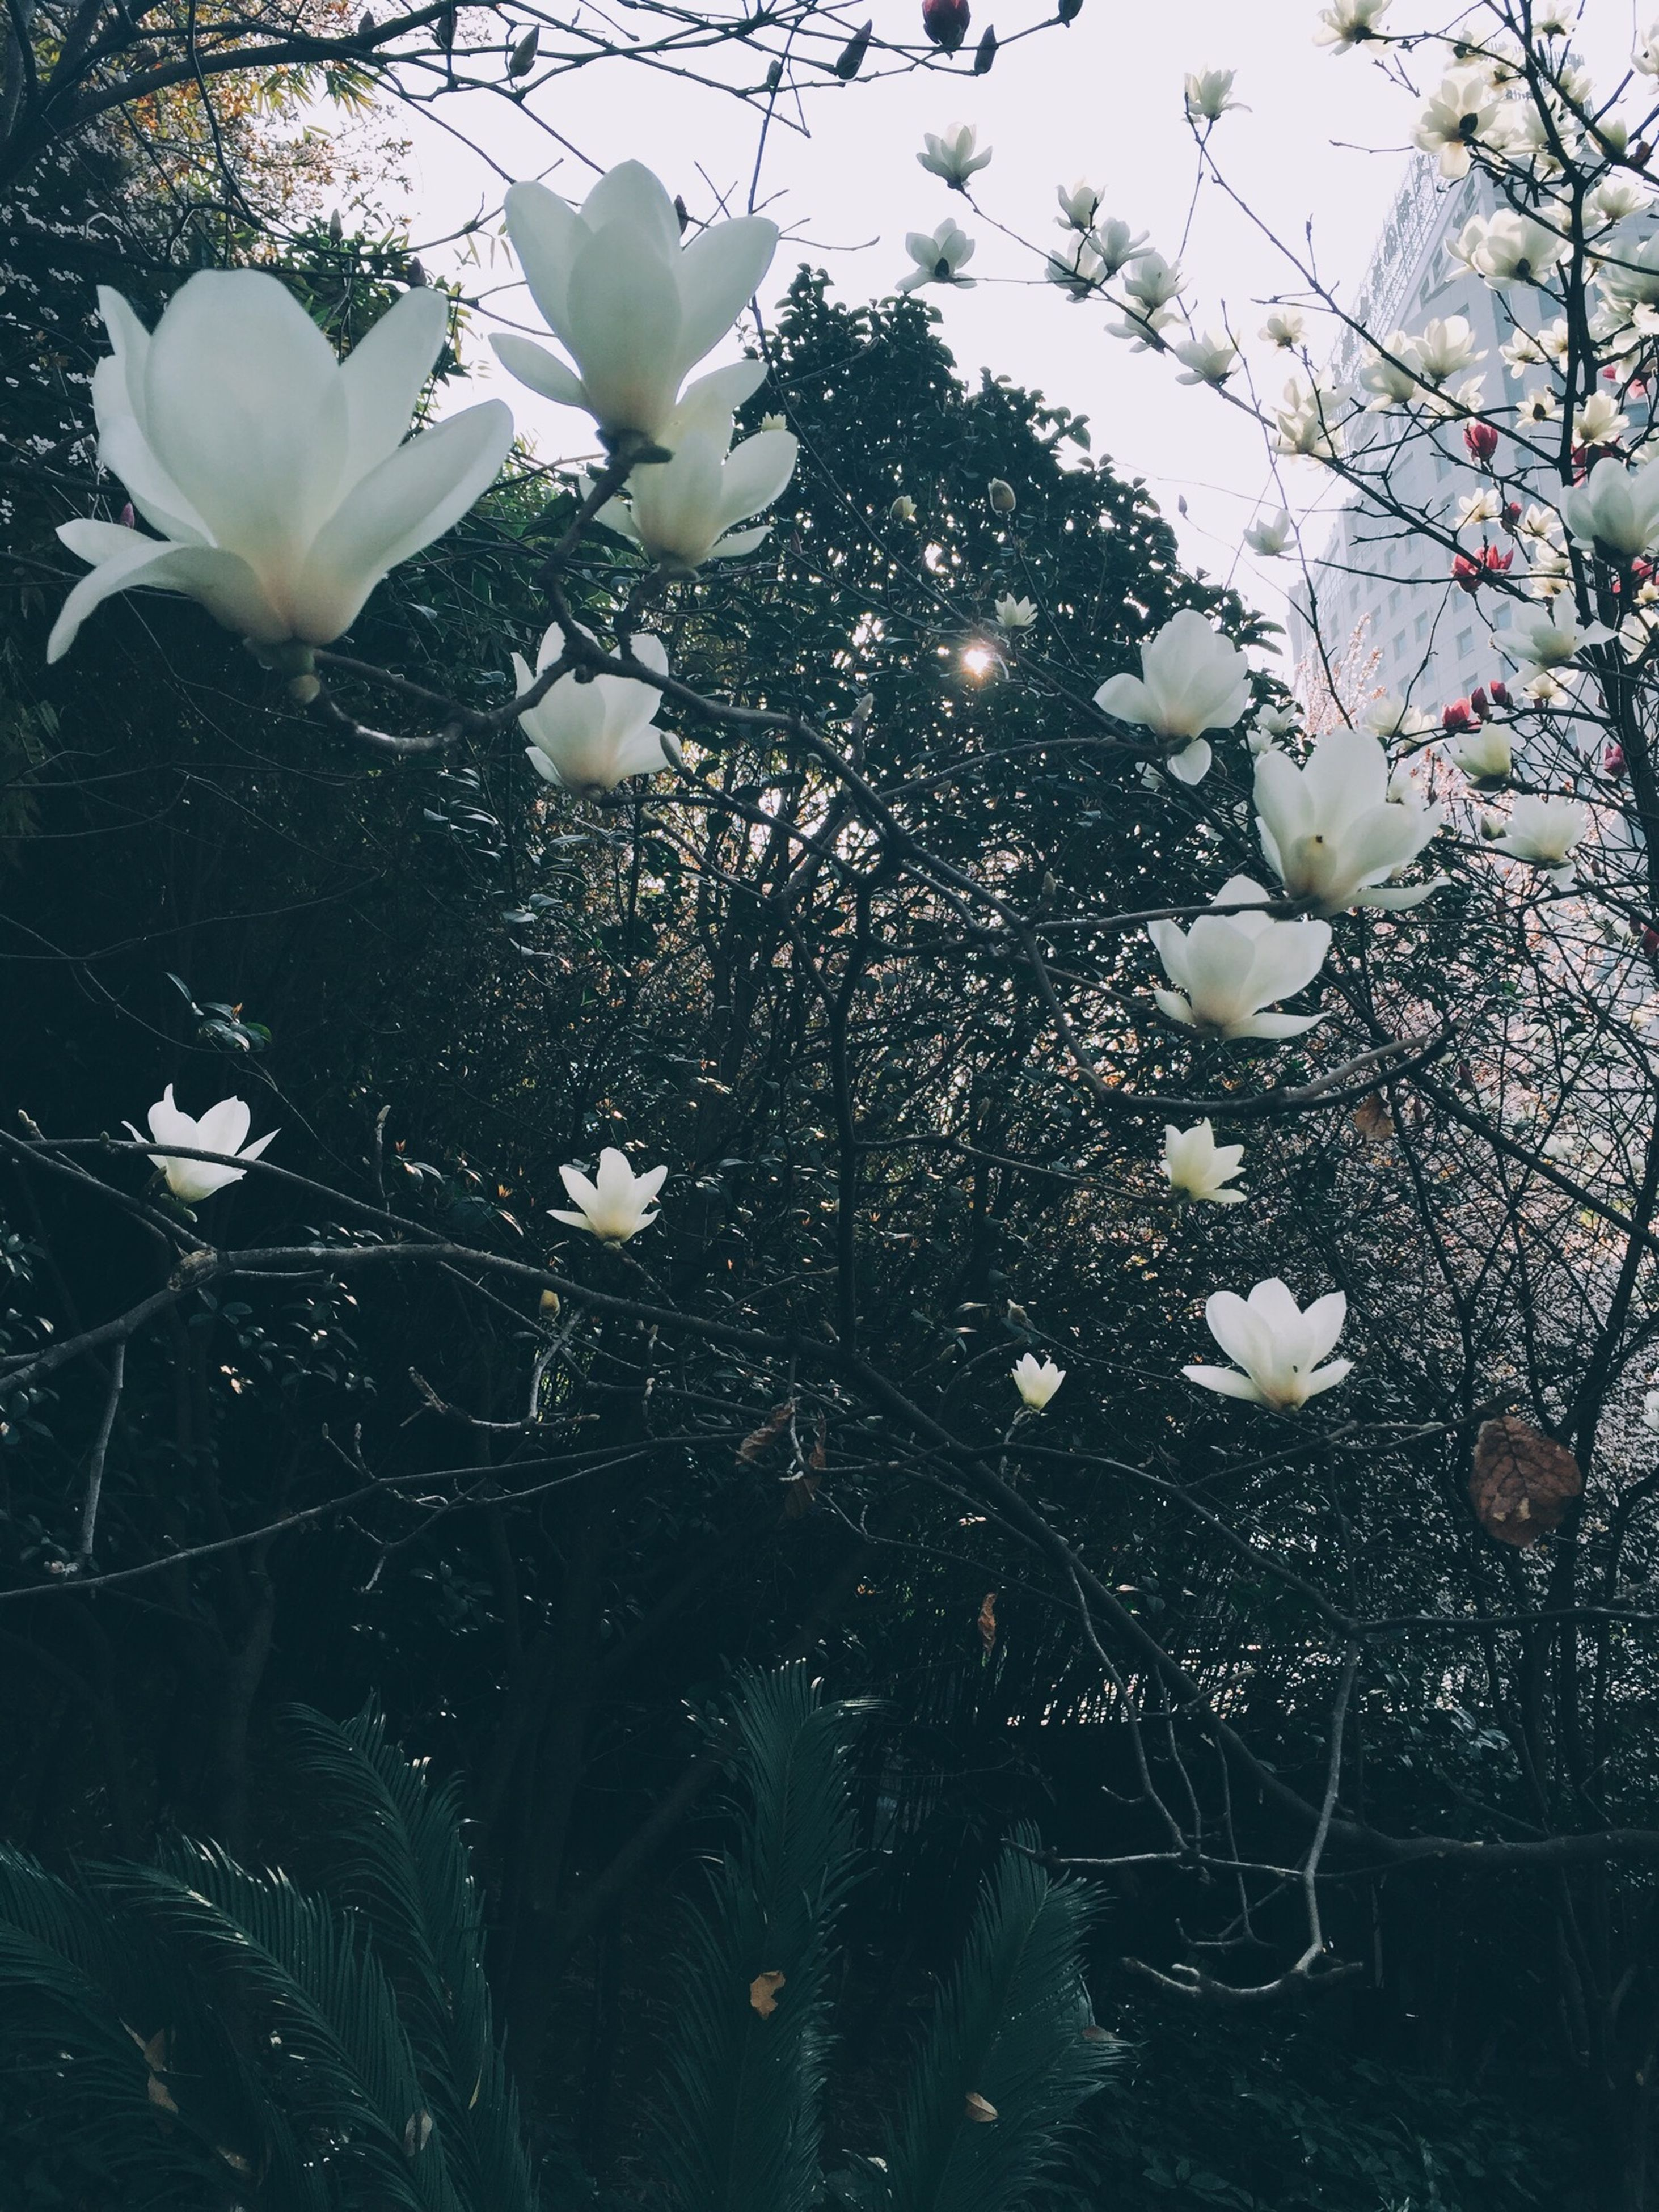 flower, growth, fragility, freshness, white color, beauty in nature, petal, nature, blooming, plant, flower head, blossom, in bloom, close-up, branch, botany, springtime, outdoors, season, day